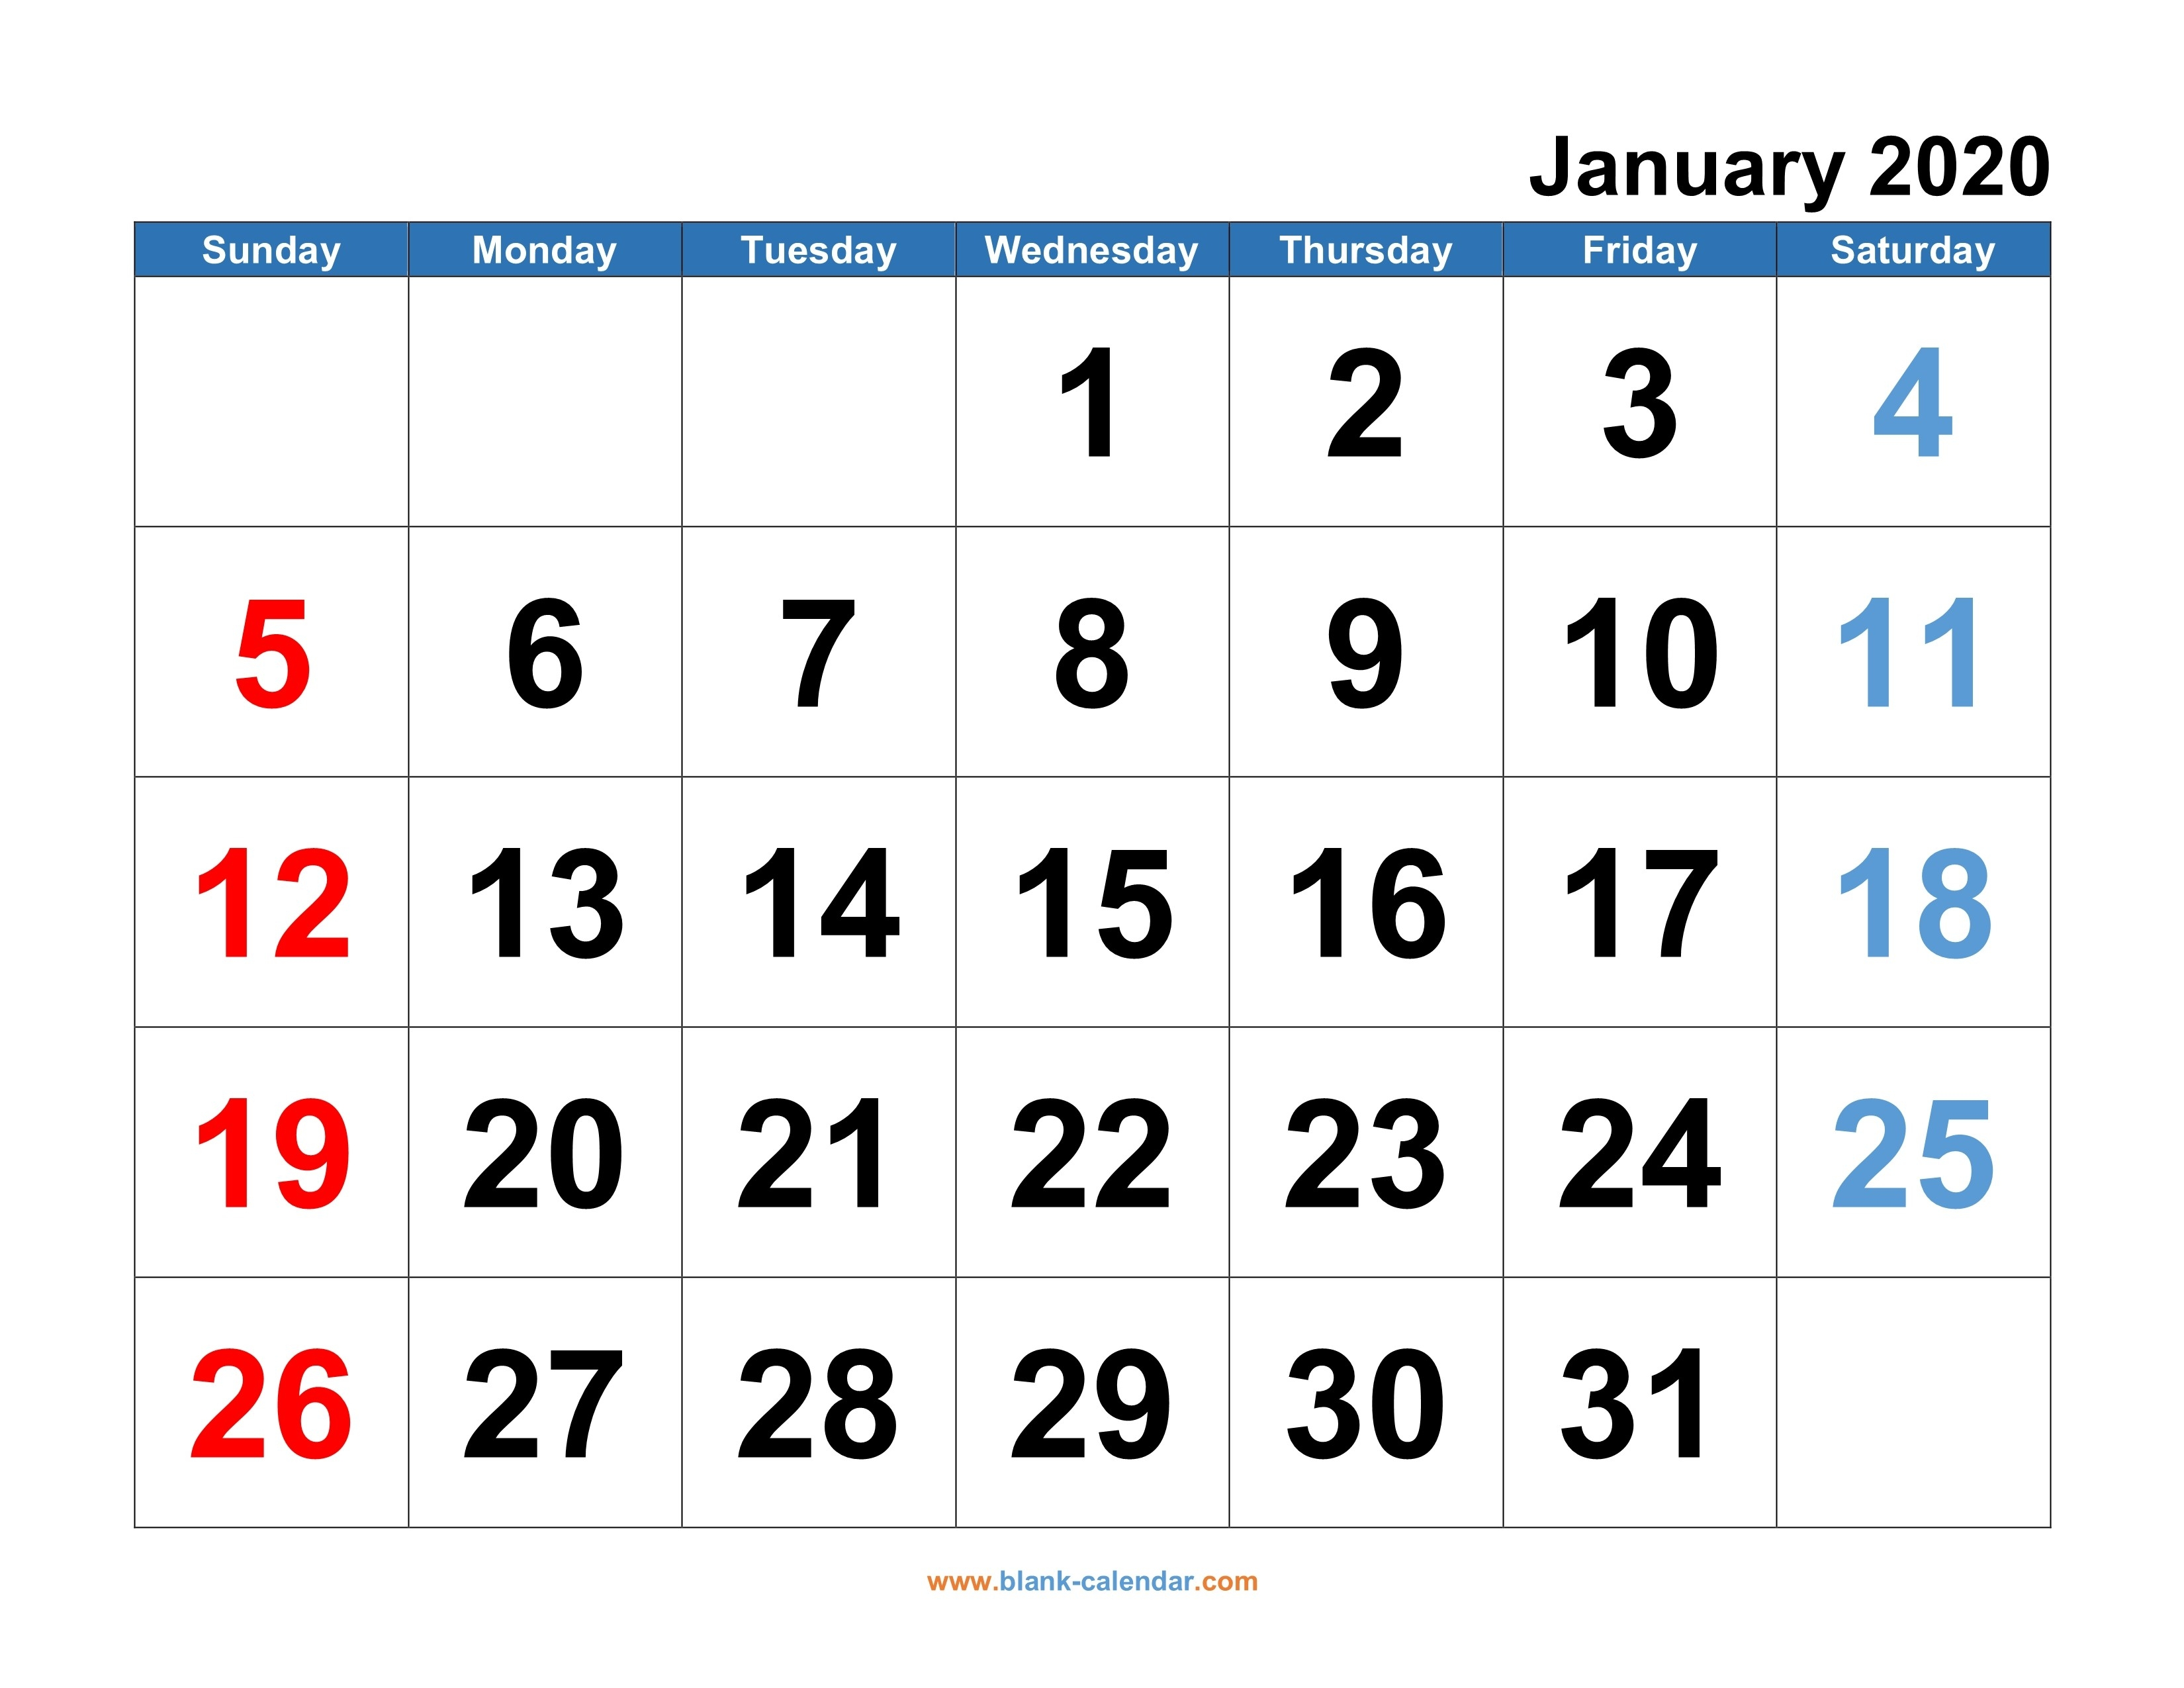 Monthly Calendar 2020 | Free Download, Editable And Printable-2020 Fill In Printable Monthly Calendar